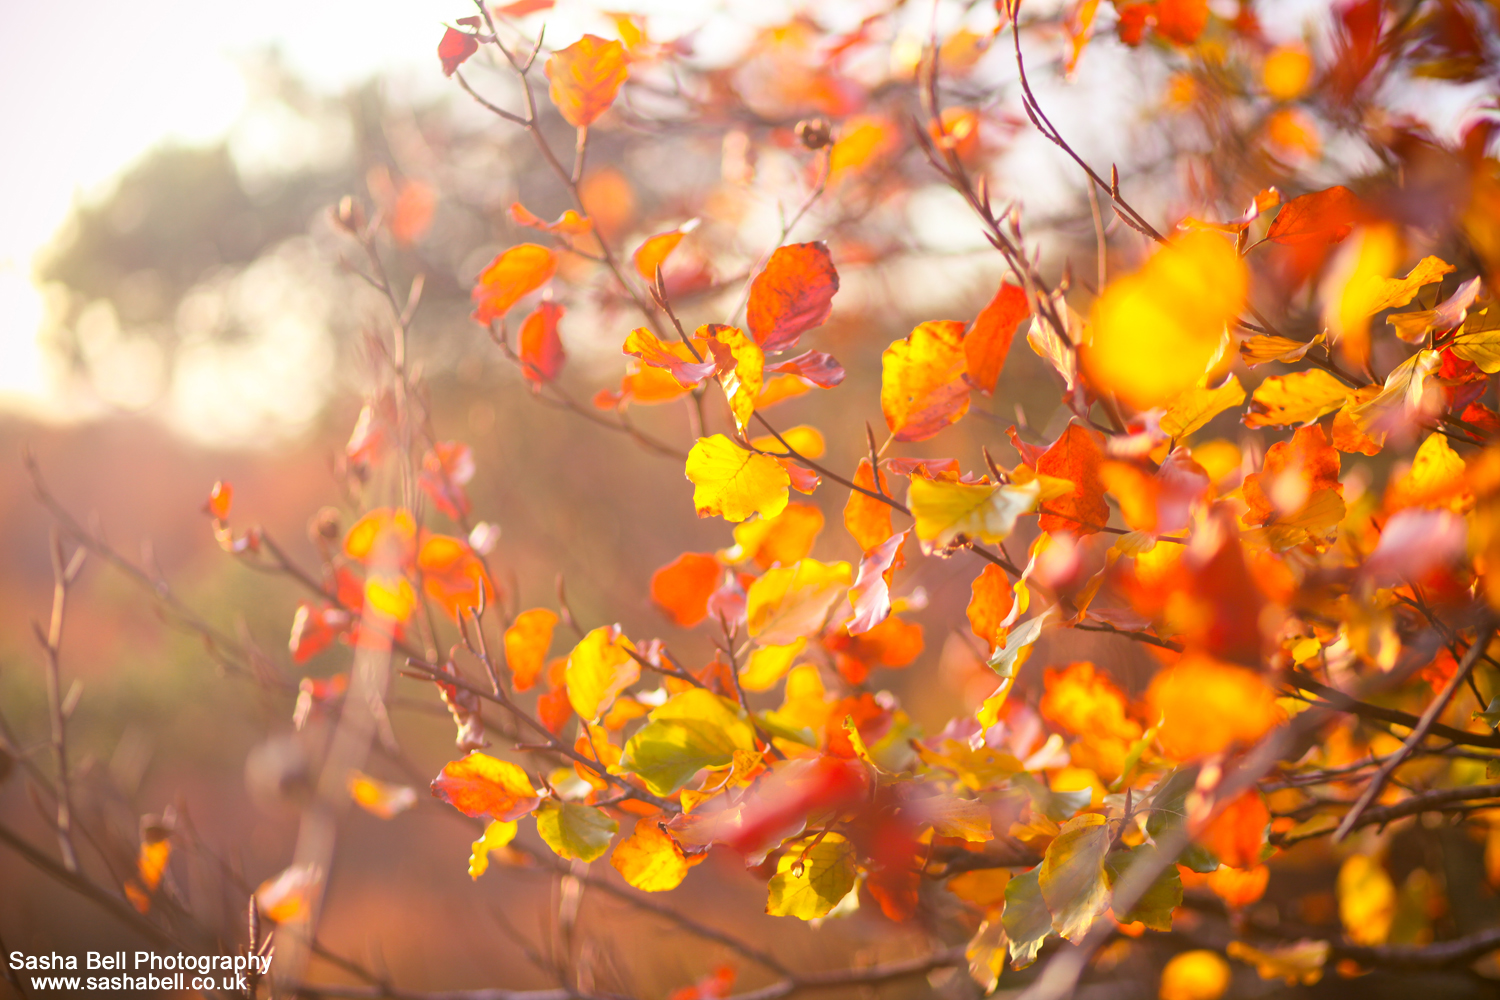 The Colour of Autumn – #25 of #50